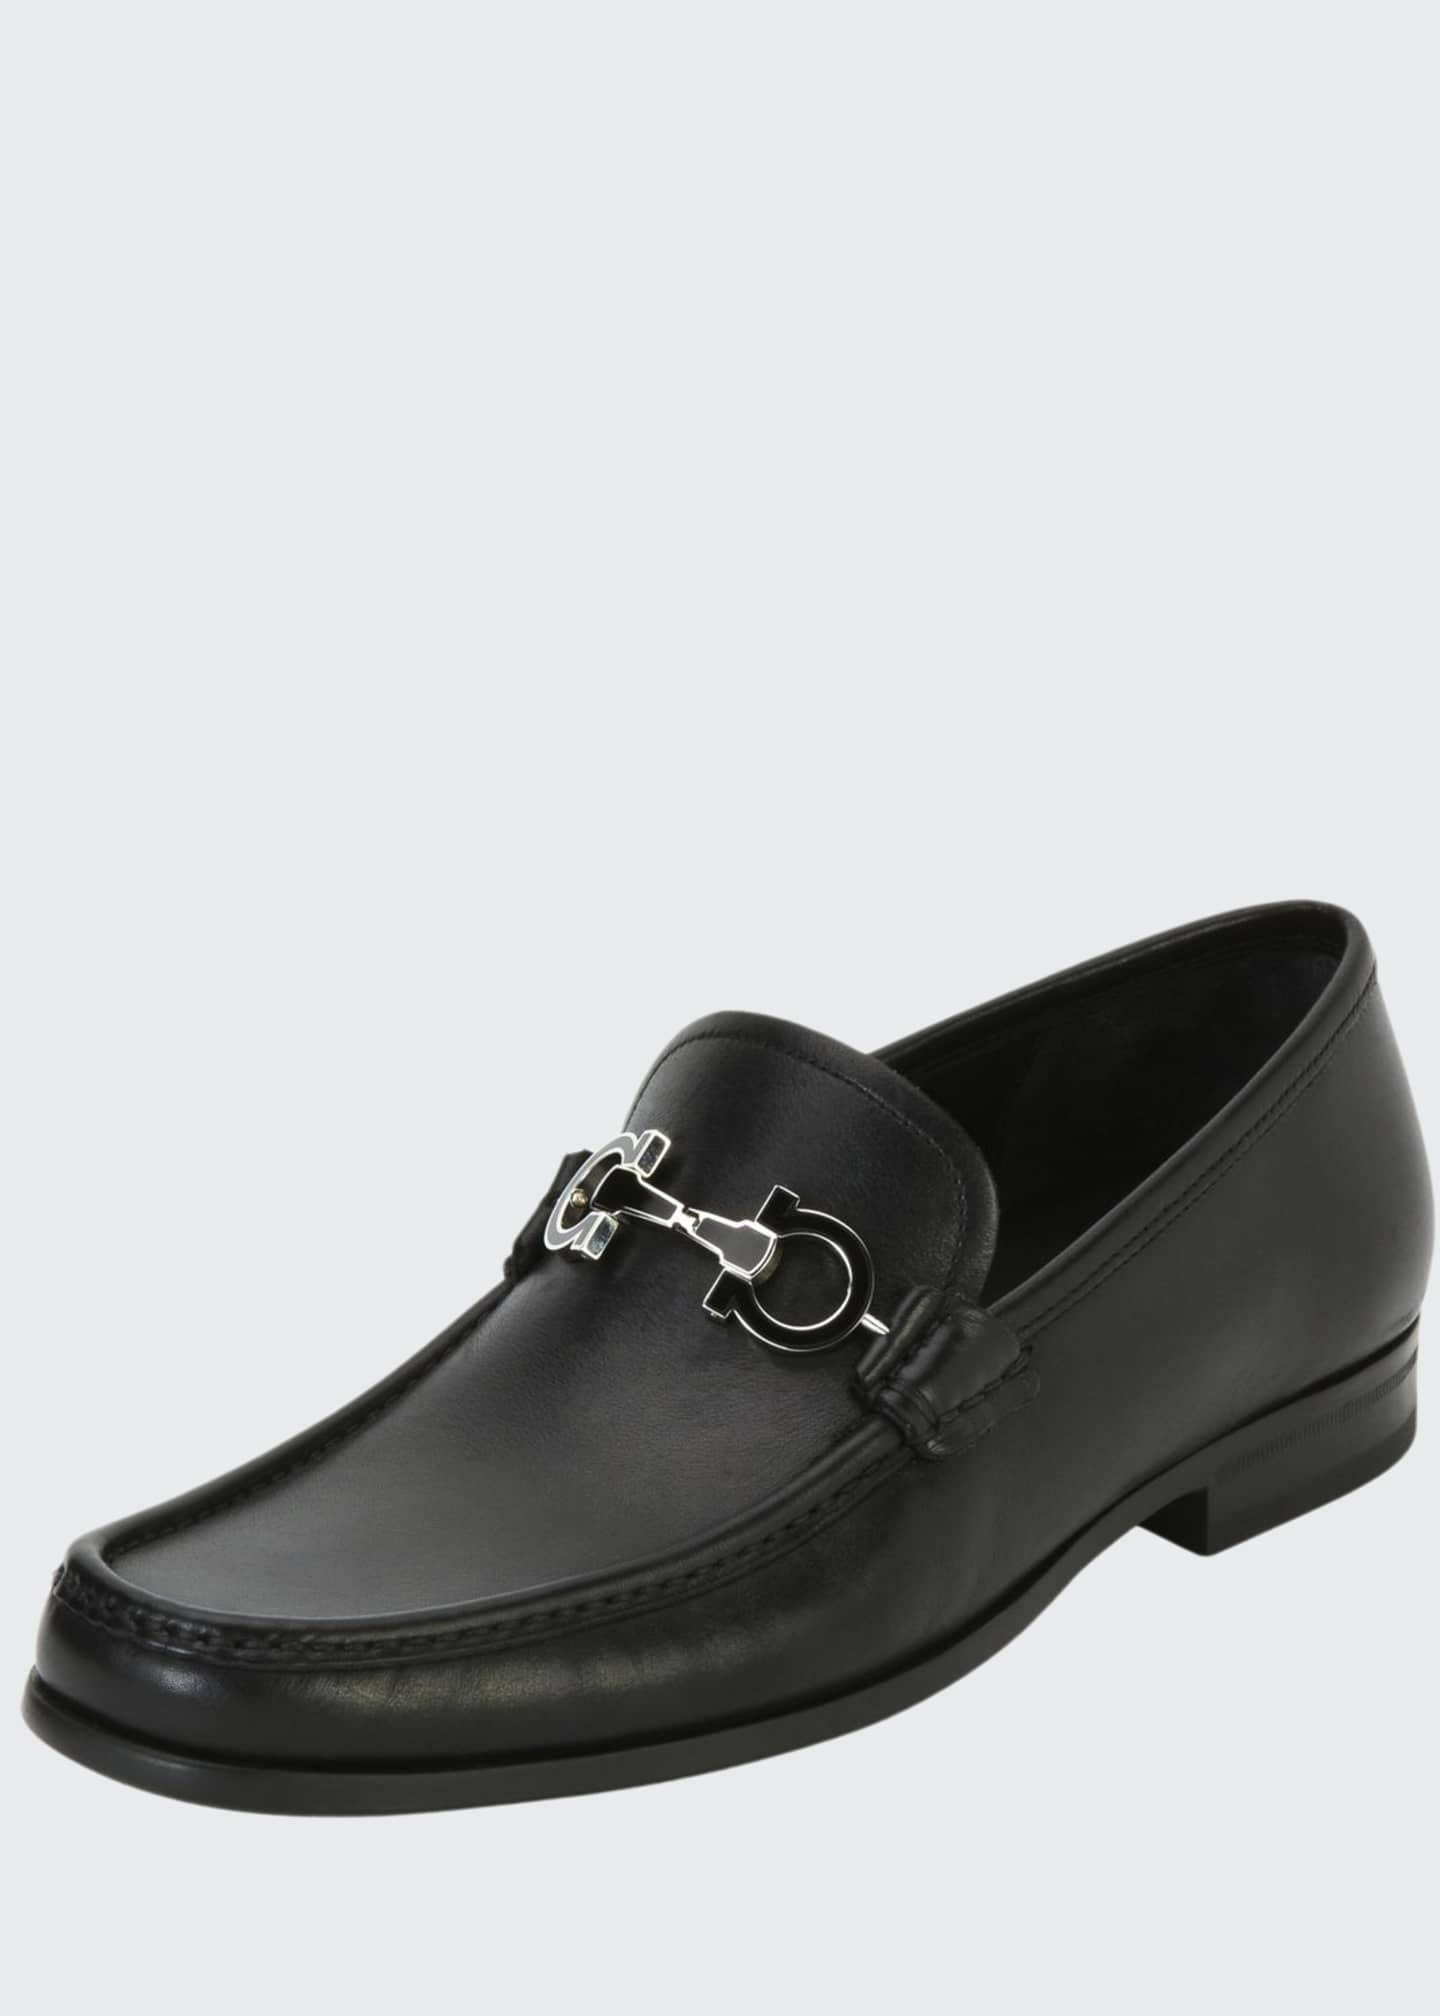 Image 1 of 3: Men's Leather Loafer with Reversible Gancini Ornament